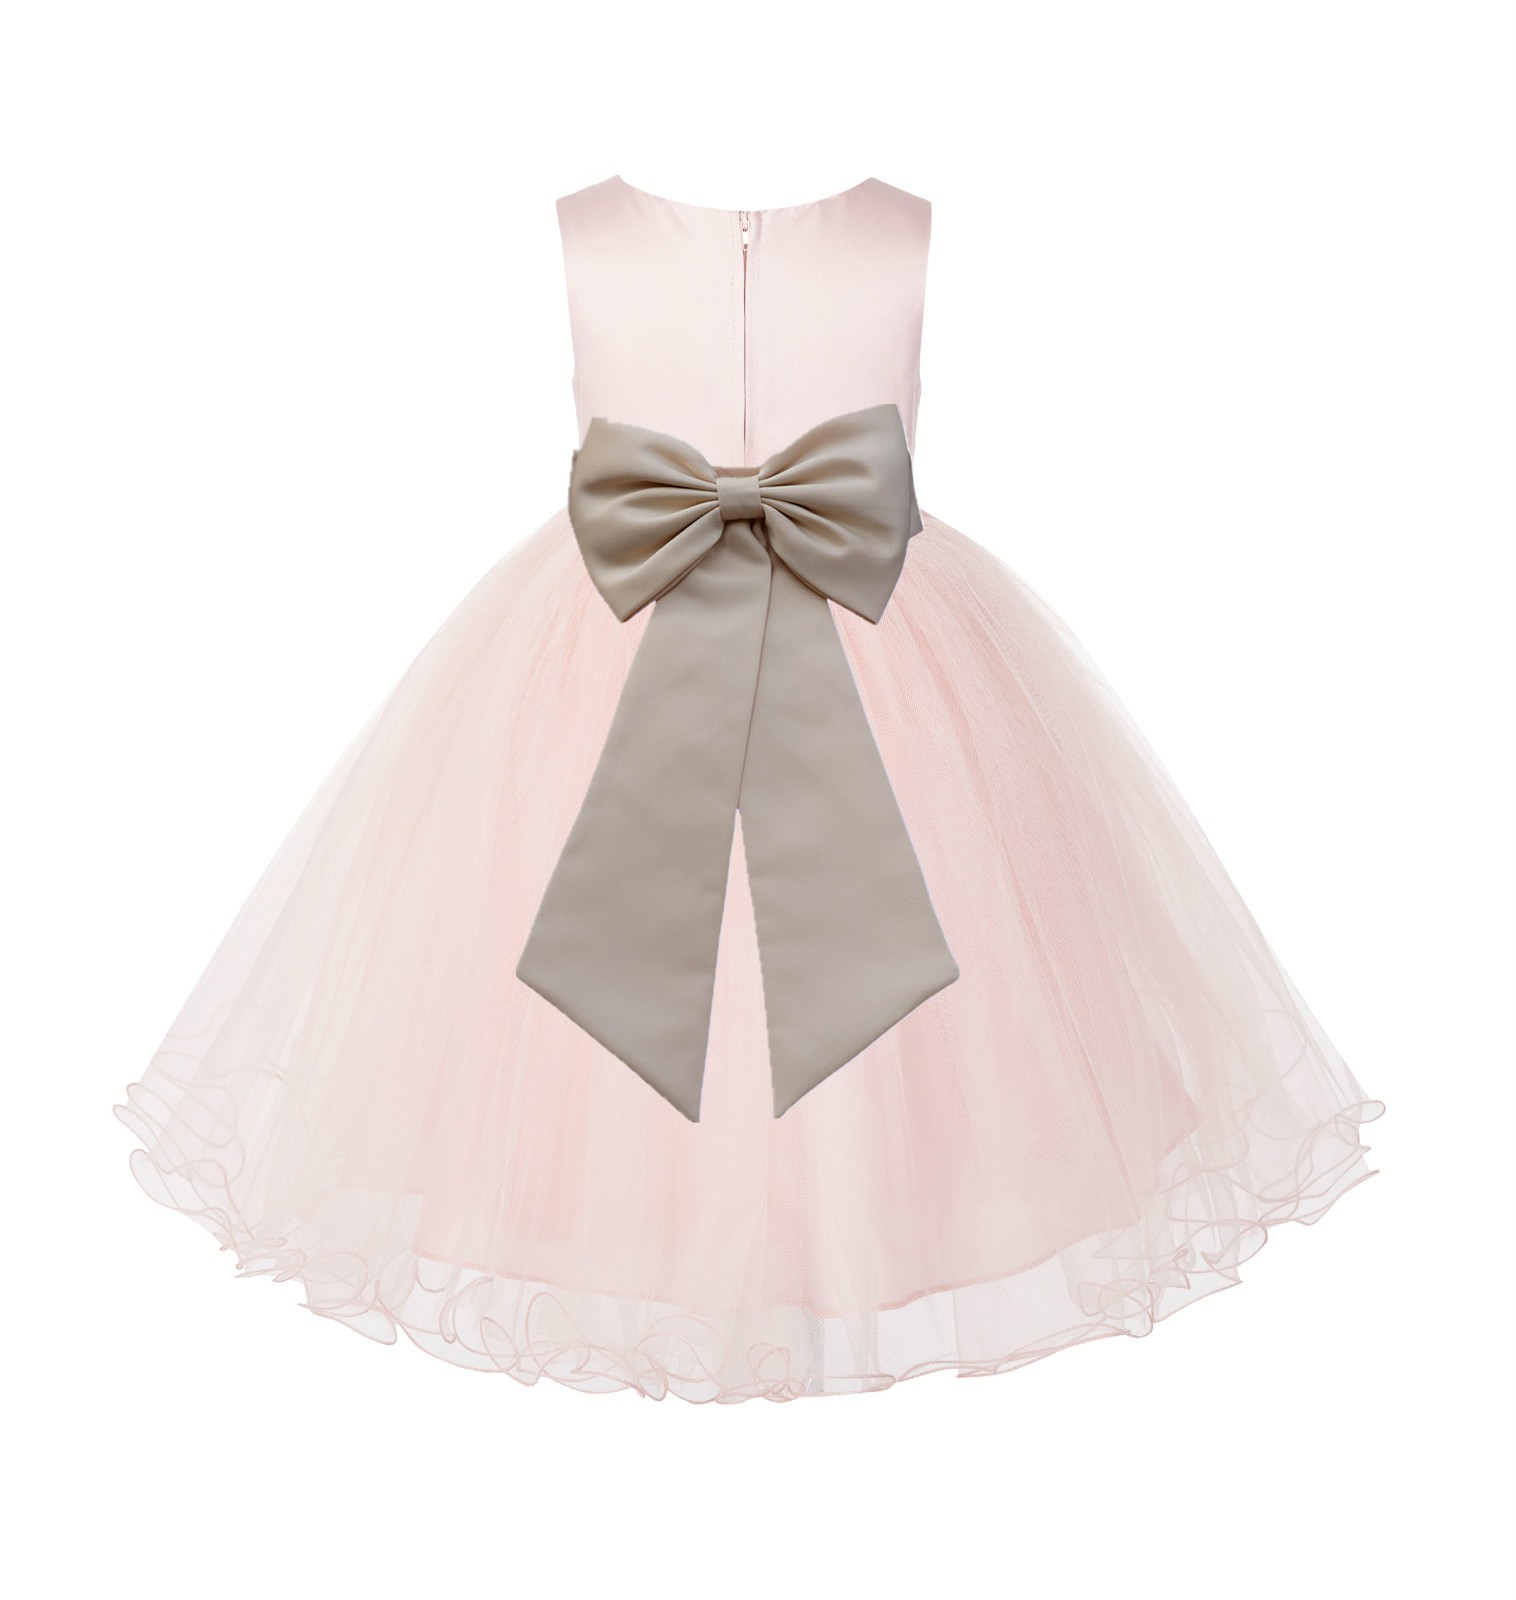 Blush PInk / champagne Tulle Rattail Edge Flower Girl Dress Wedding Bridesmaid 829T